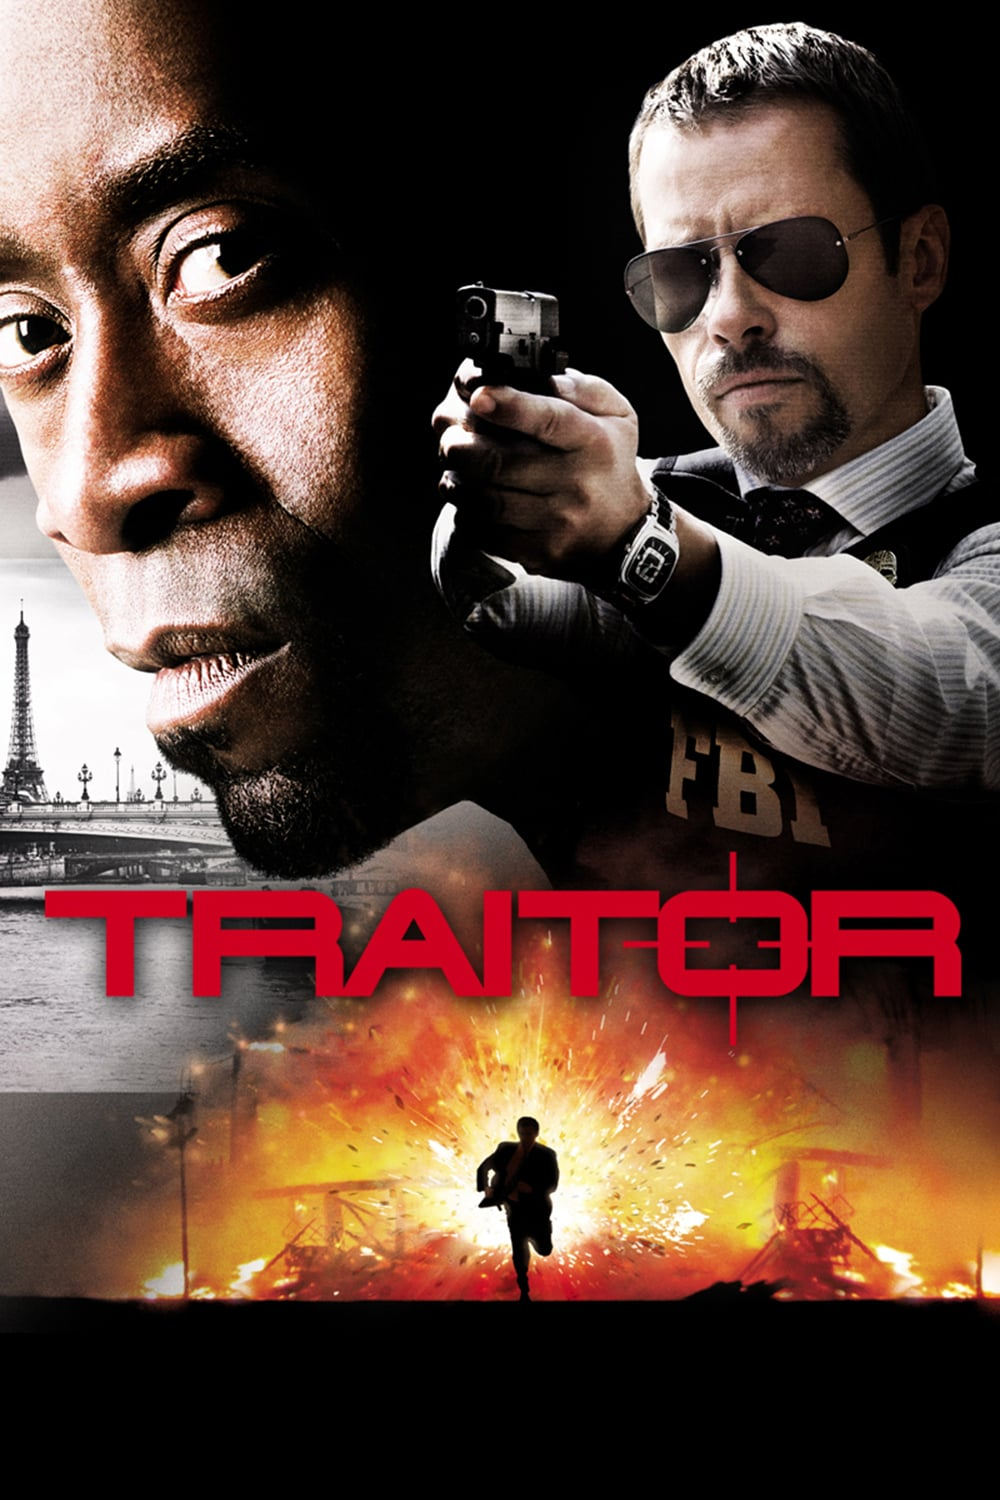 Traitor (2008) Poster #1